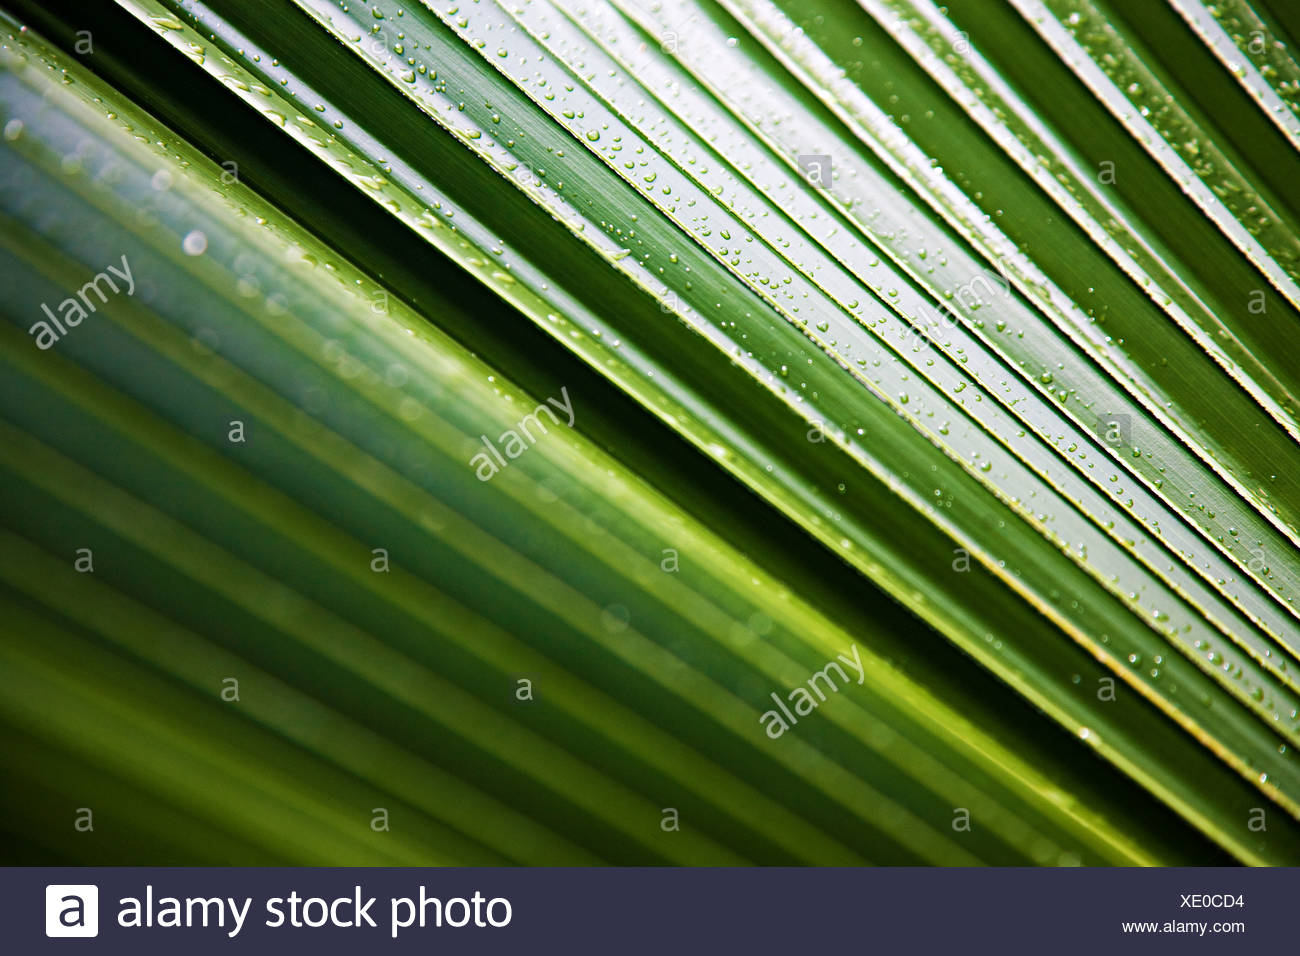 Water droplet on a frond - Stock Image